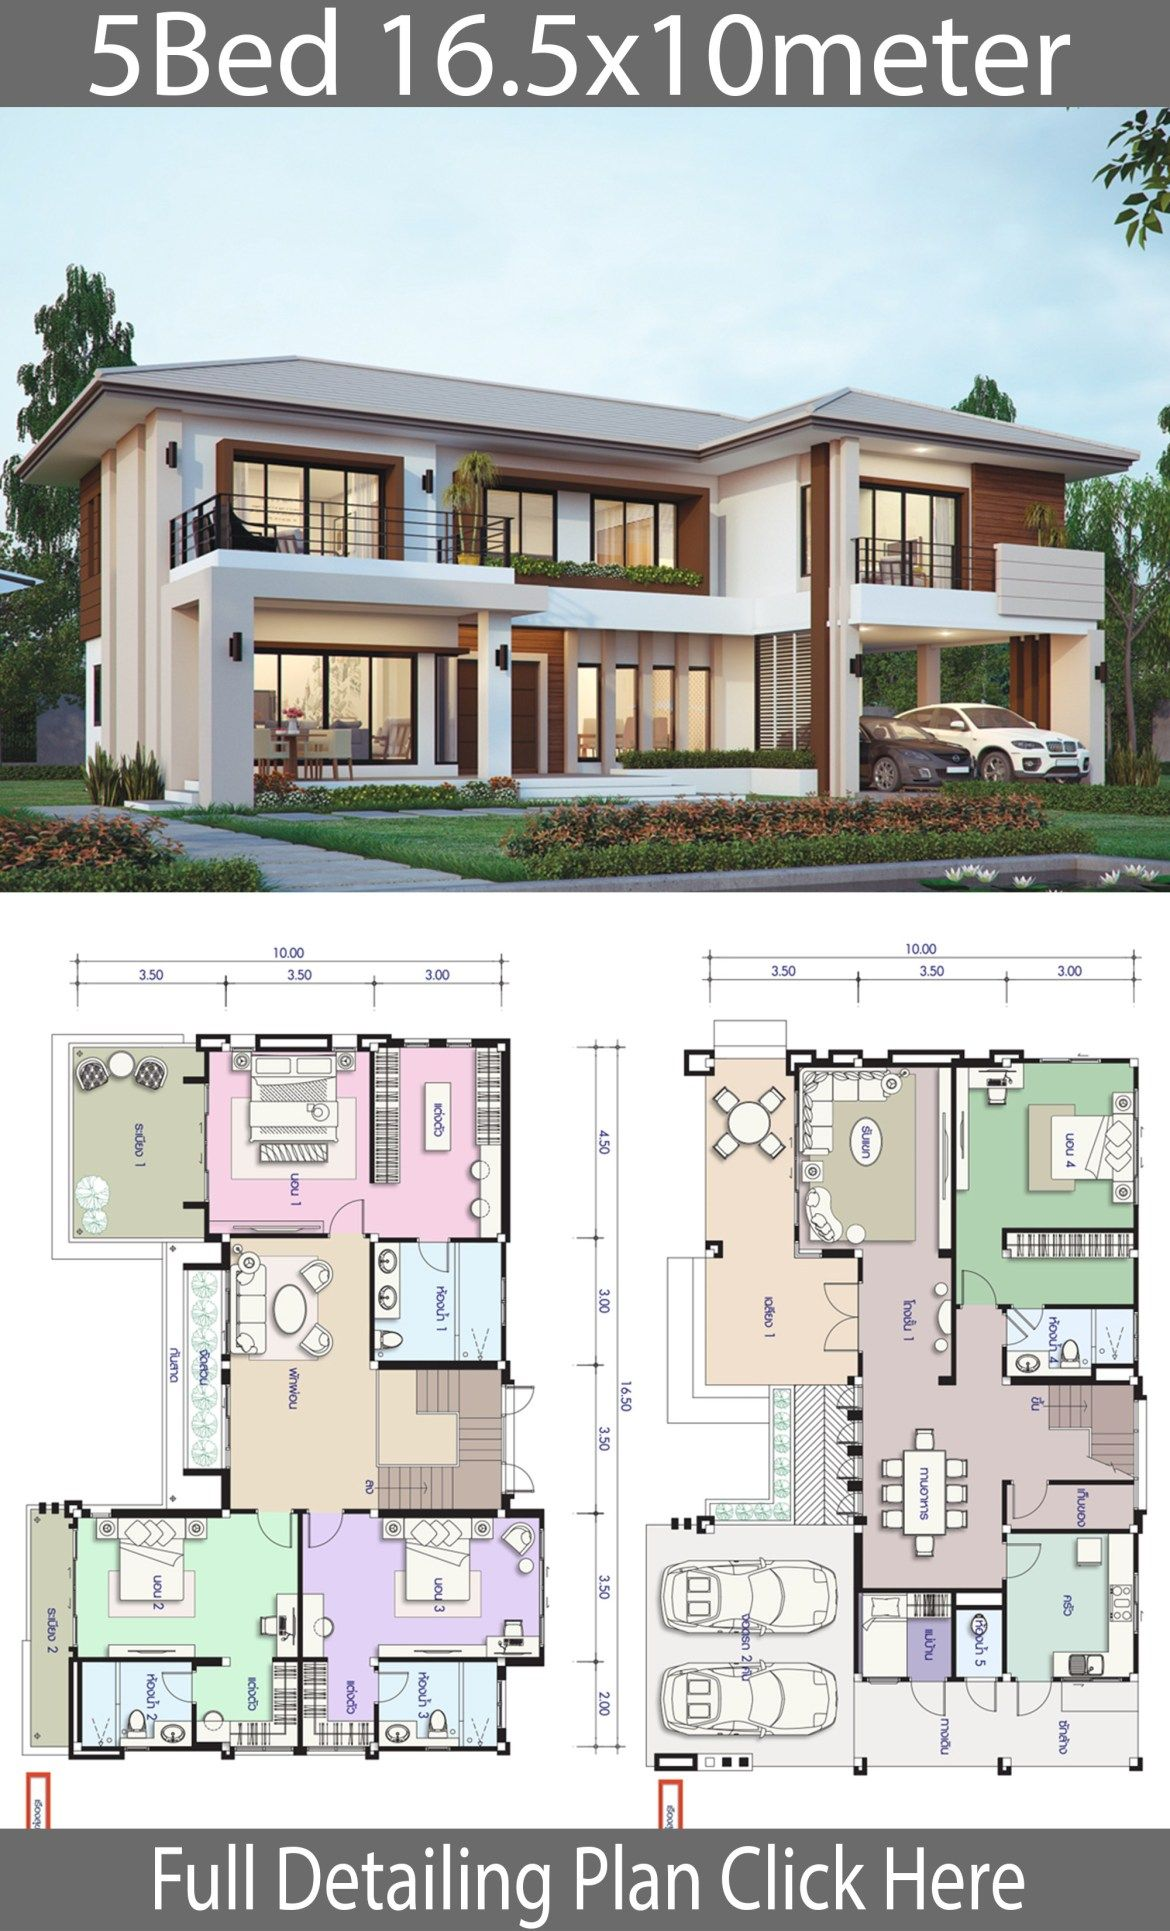 House design plan 16.5x10m with 5 bedrooms | Plan maison ...